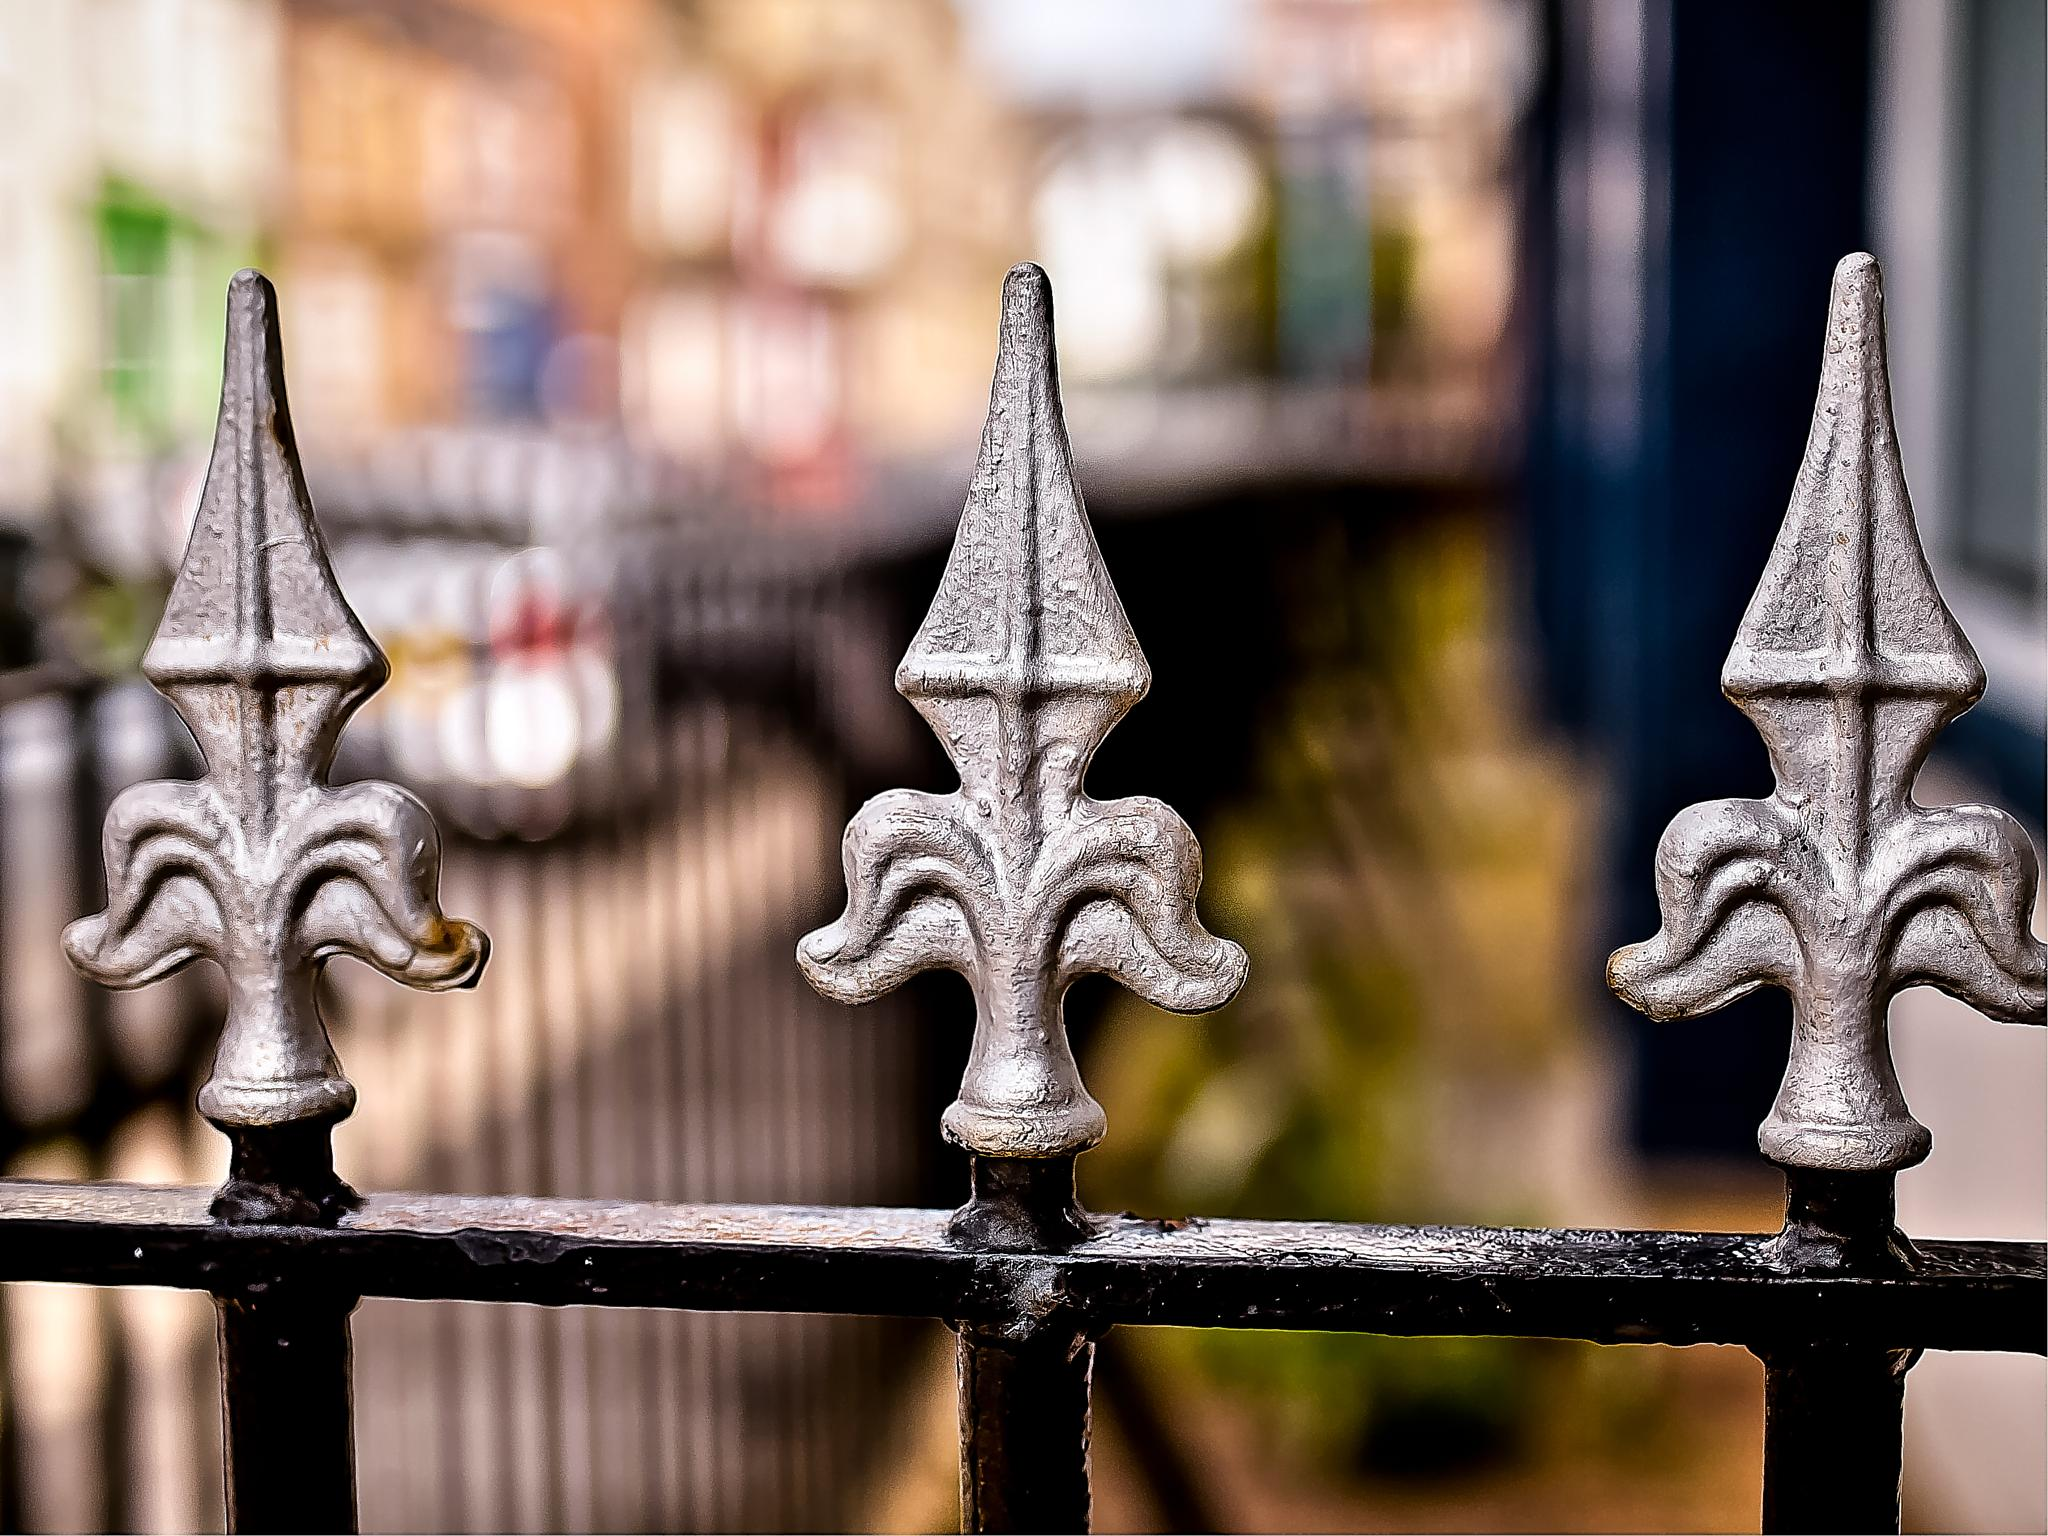 Railings by Peter Edwardo Vicente.